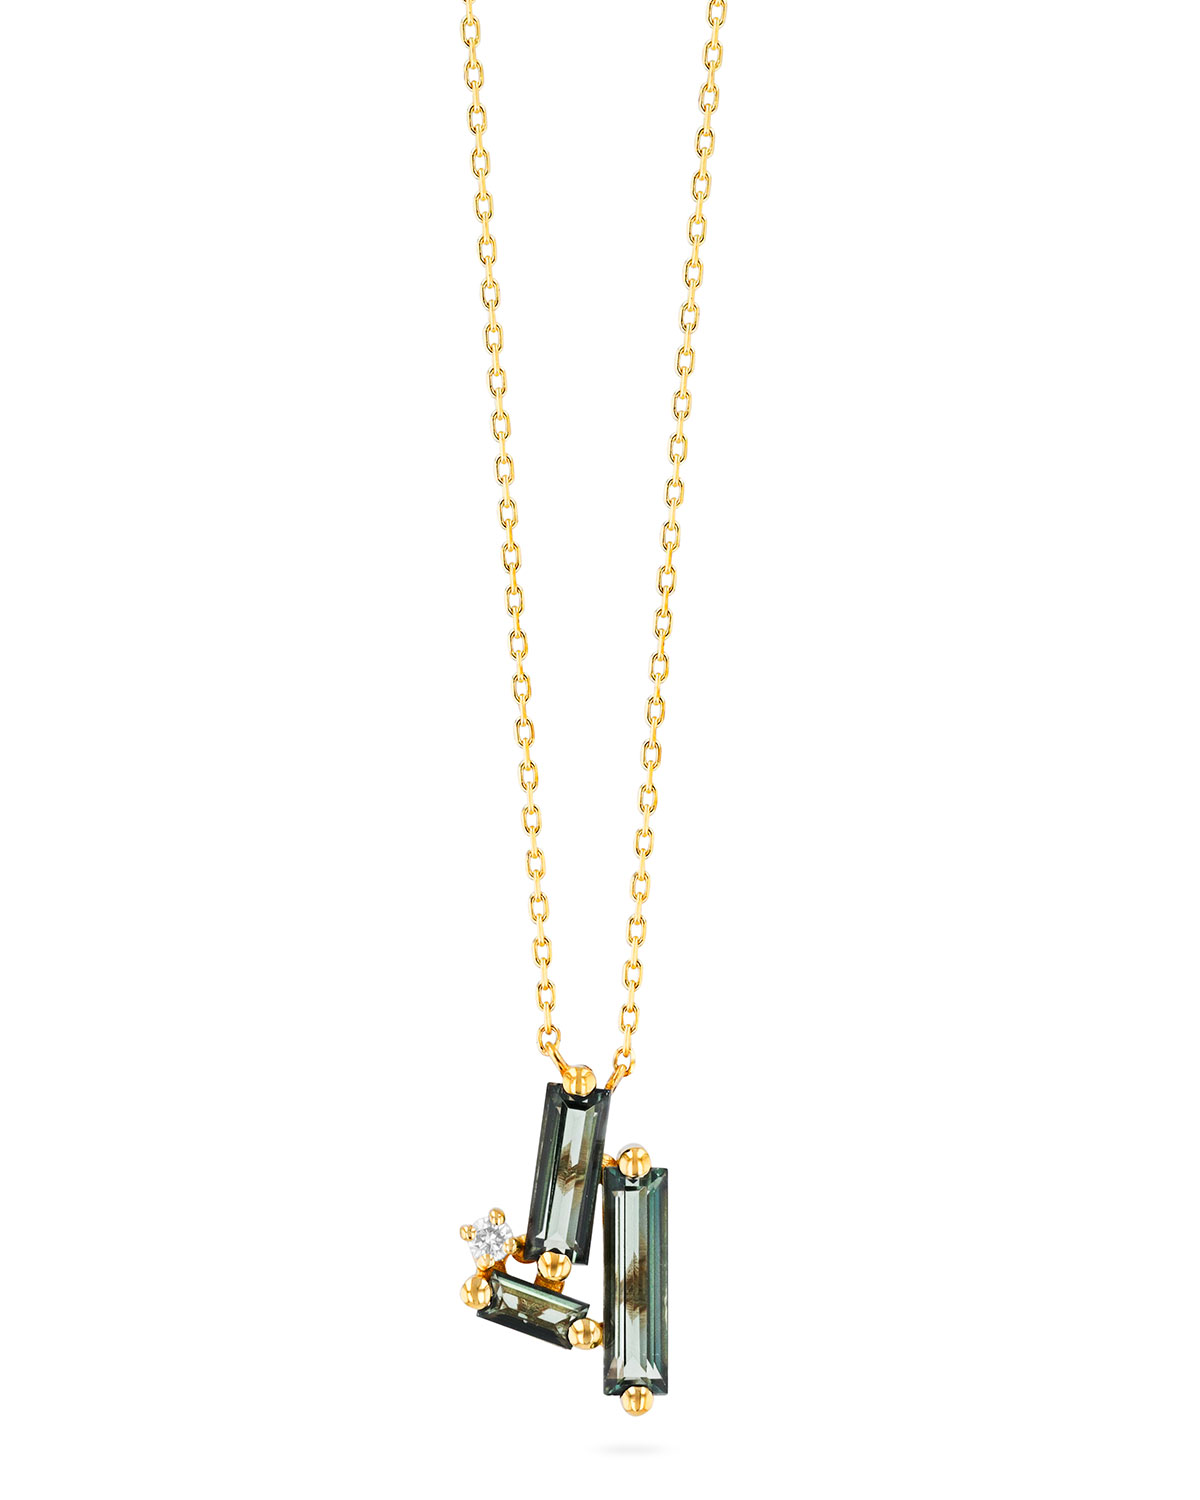 14K Yellow Gold Linear Cluster Necklace in Green Envy Topaz